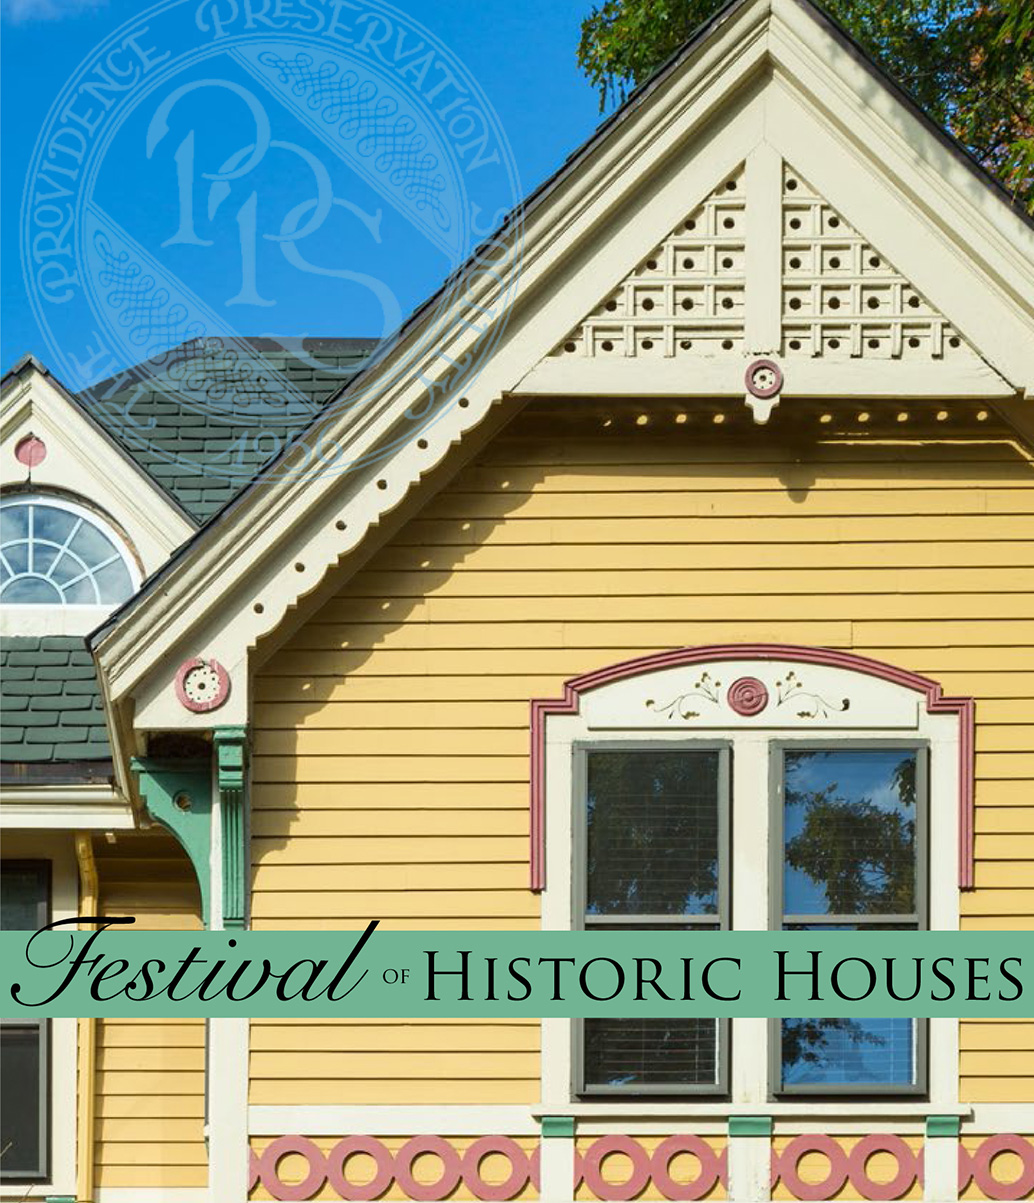 Providence Preservation Society, historic houses in New England